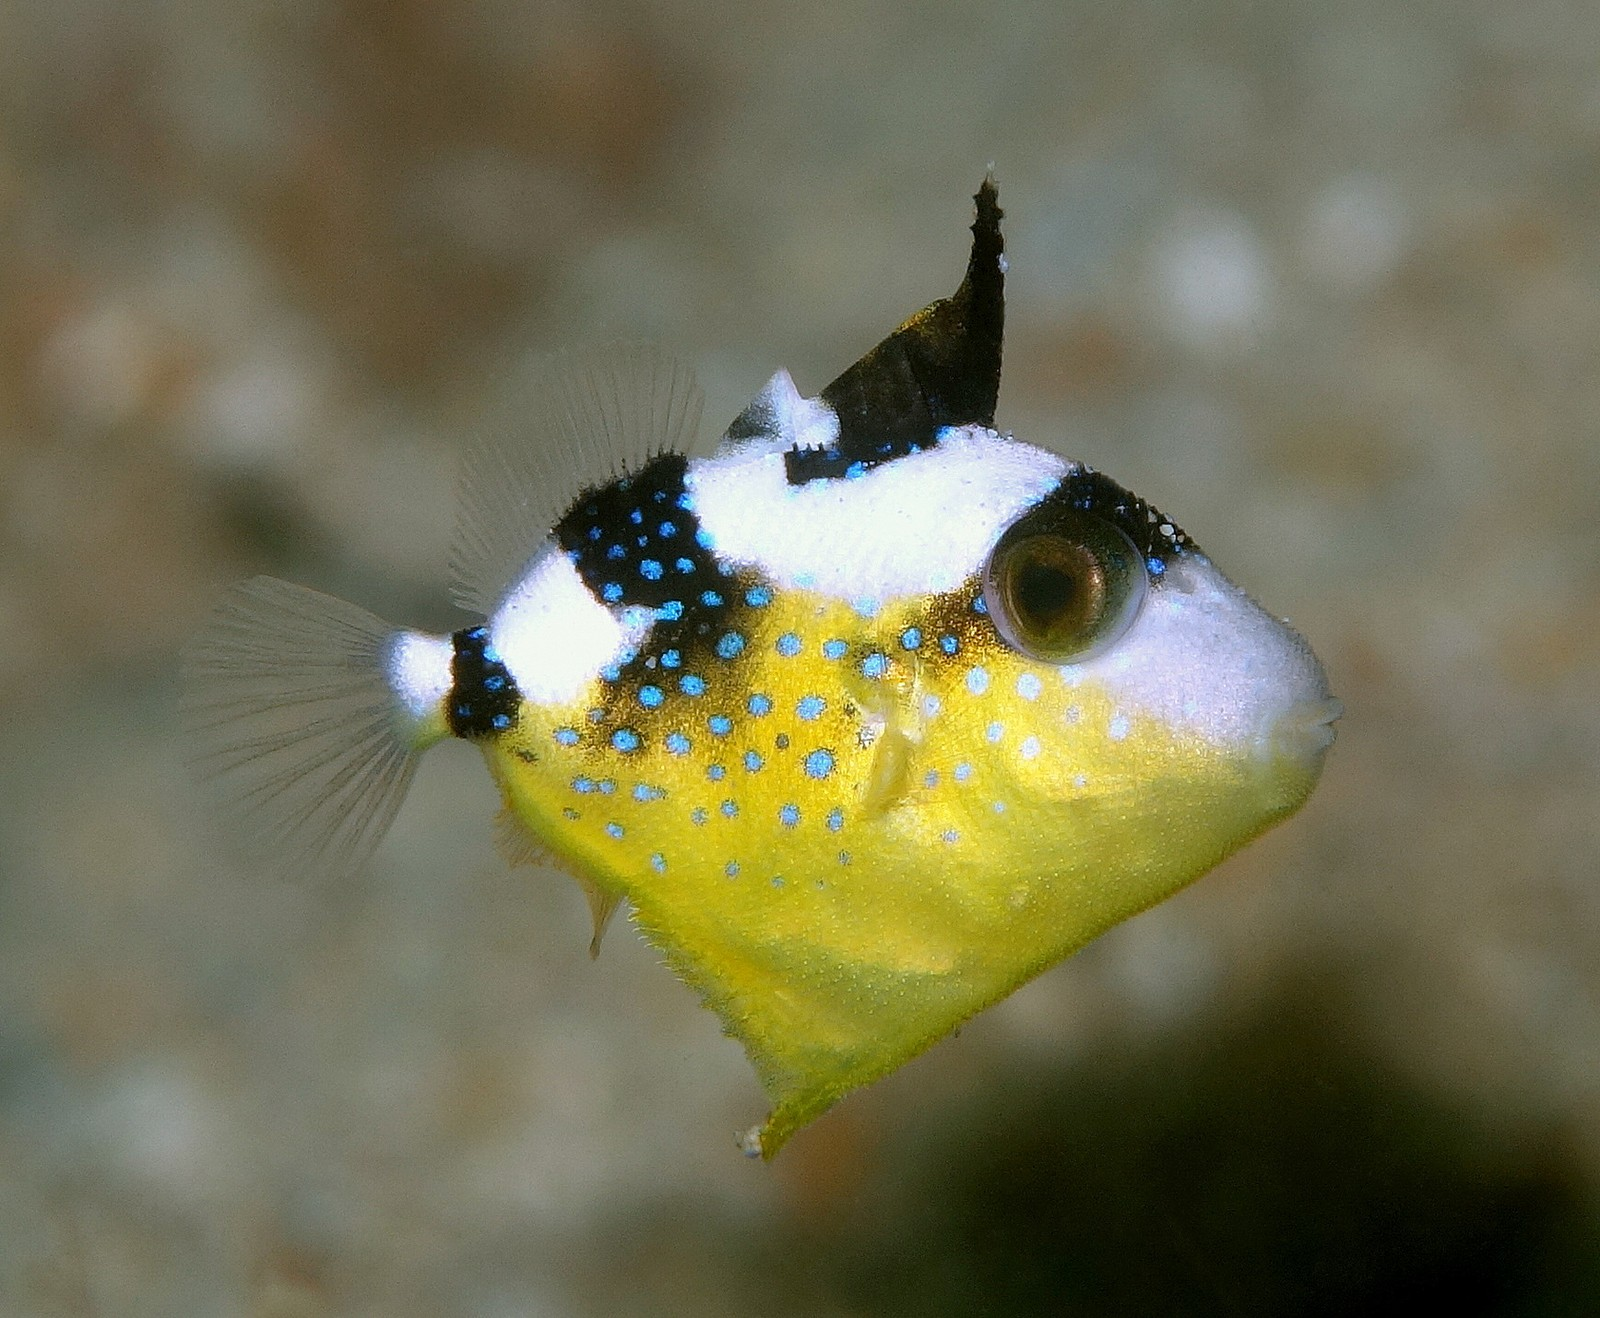 Pseudobalistes fuscus Yellow-spotted triggerfish juveniles yellowish brown with bluish grey spots and blotches